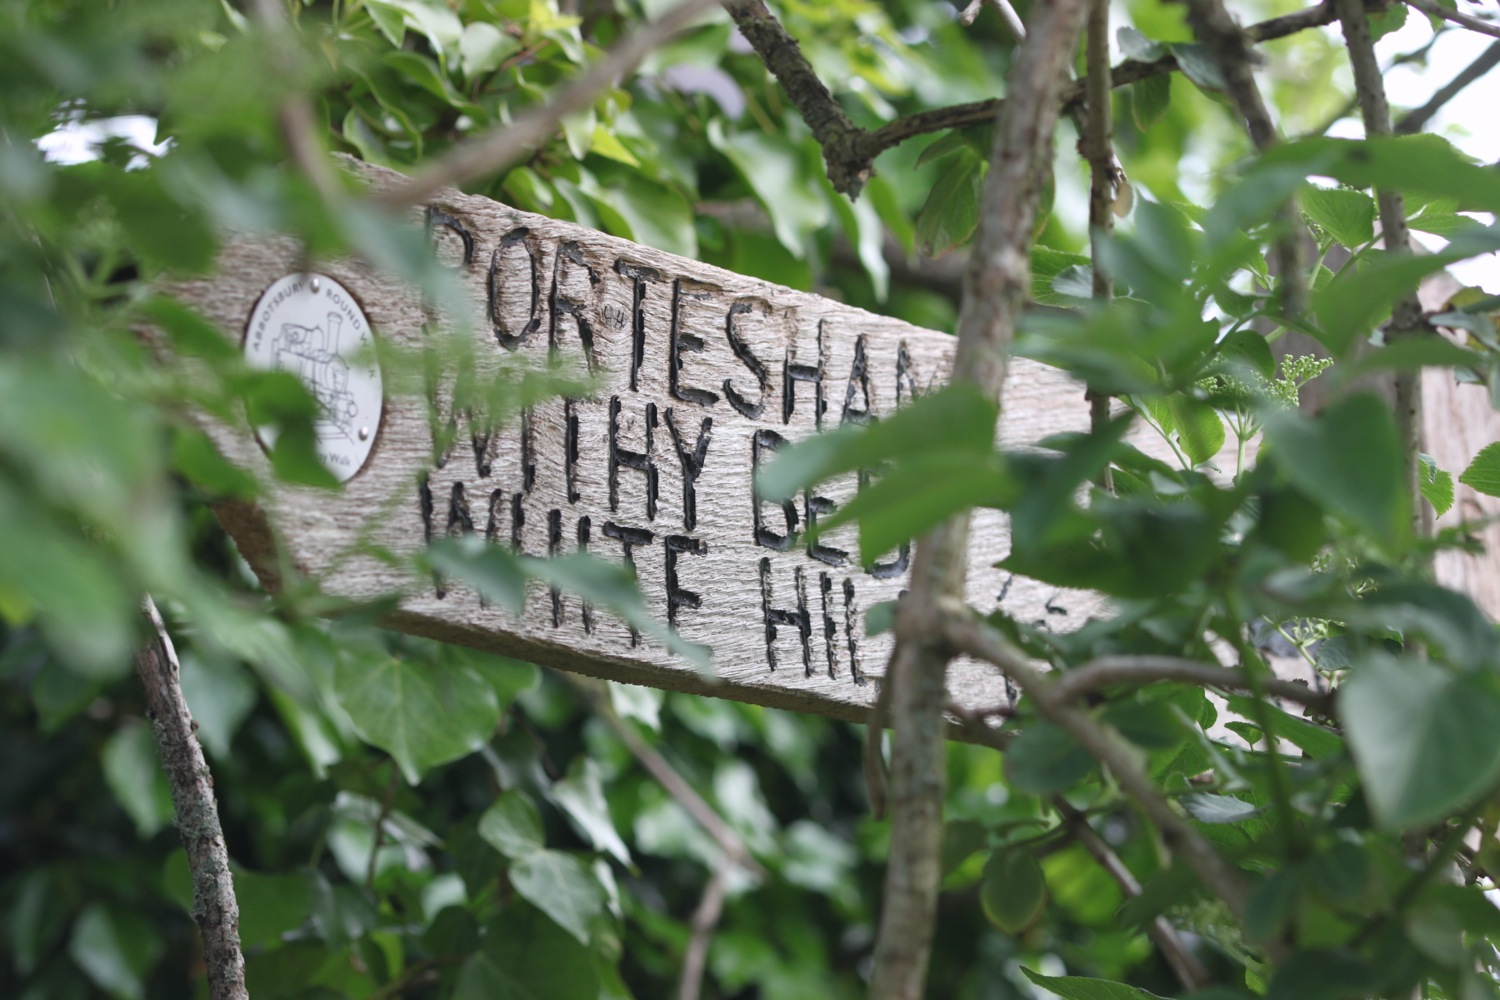 signpost for portesham withy beds